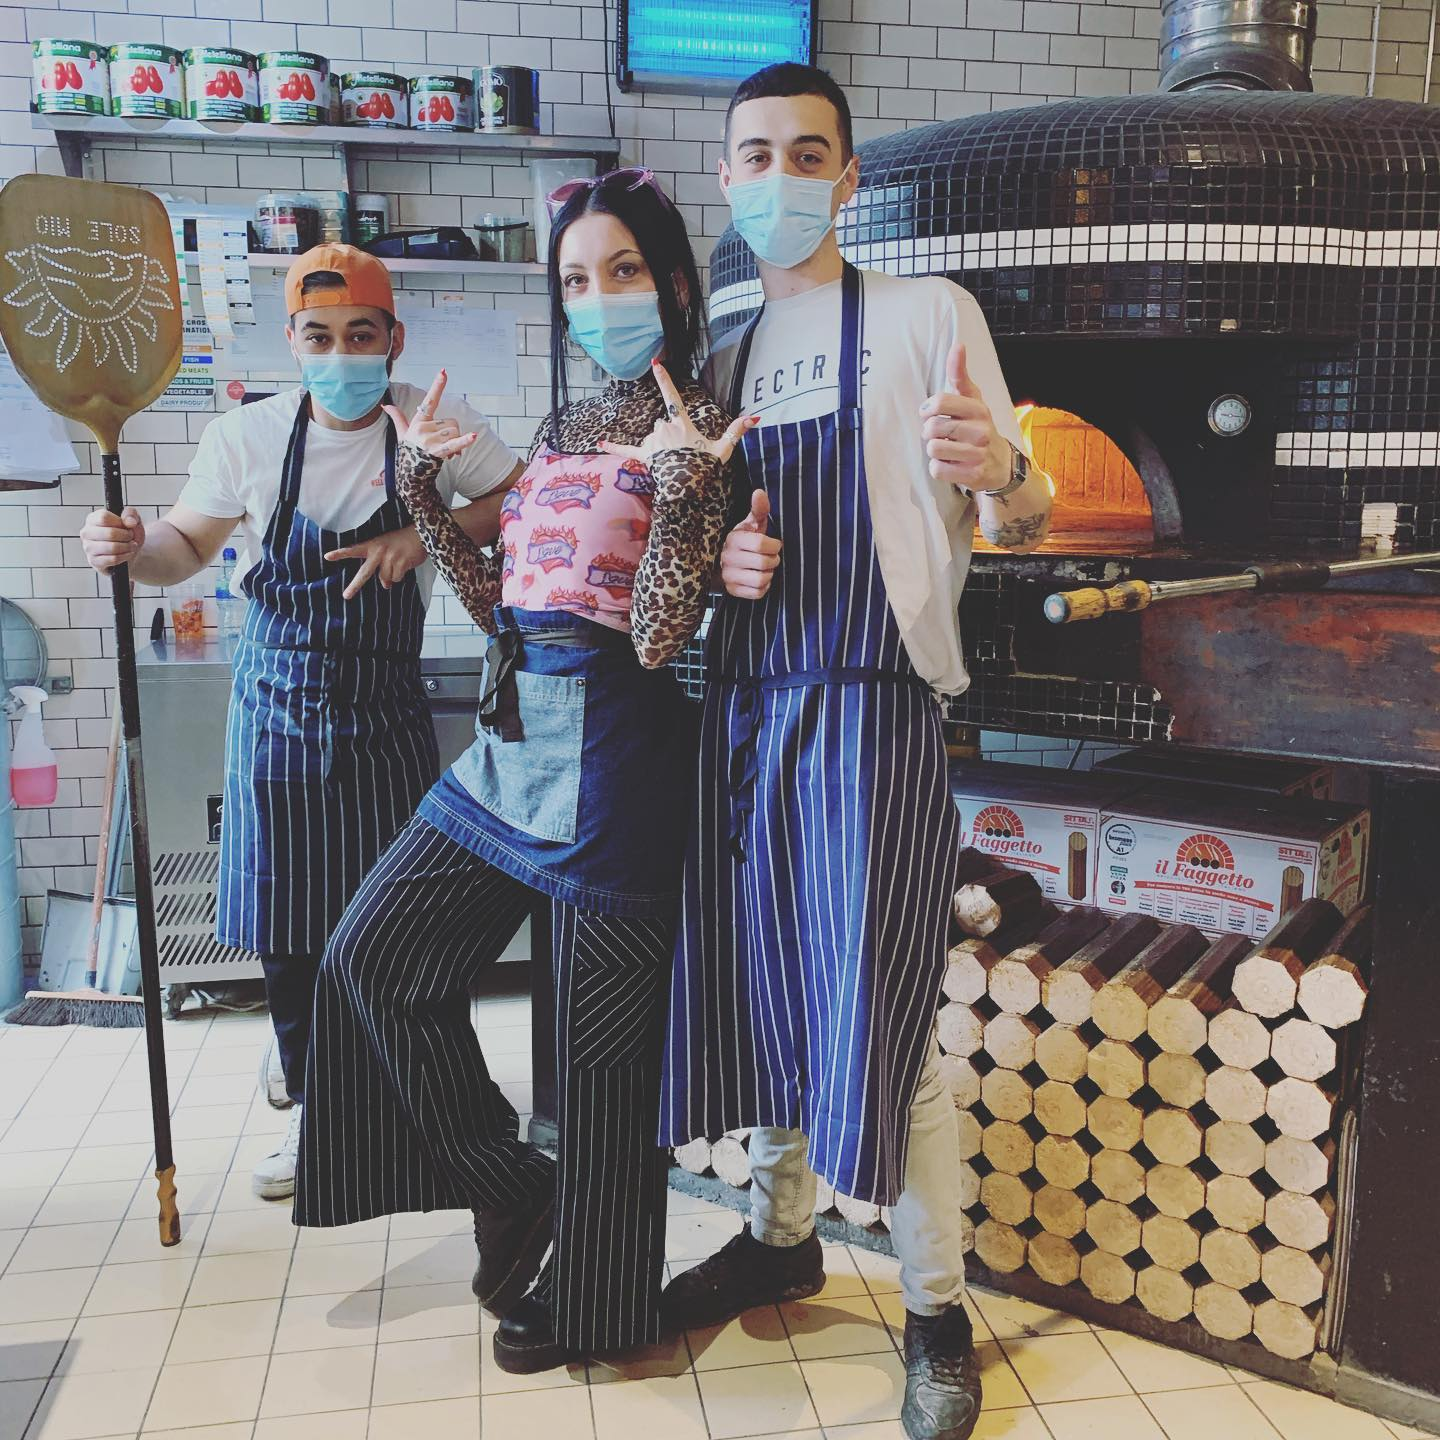 We're hiring! If you're ok with being forced to pose in front of pizza ovens for the gram and love good service with a smile then this might just be the place for you! Hiring for FOH & BOH roles so get in touch via email with your CV - hackney@wellstreetpizza.com. Love of pizza not essential but it helps 🍕❤️ . . . #pizza #youwantapizzame #hackney #job #hiring #joinus #team